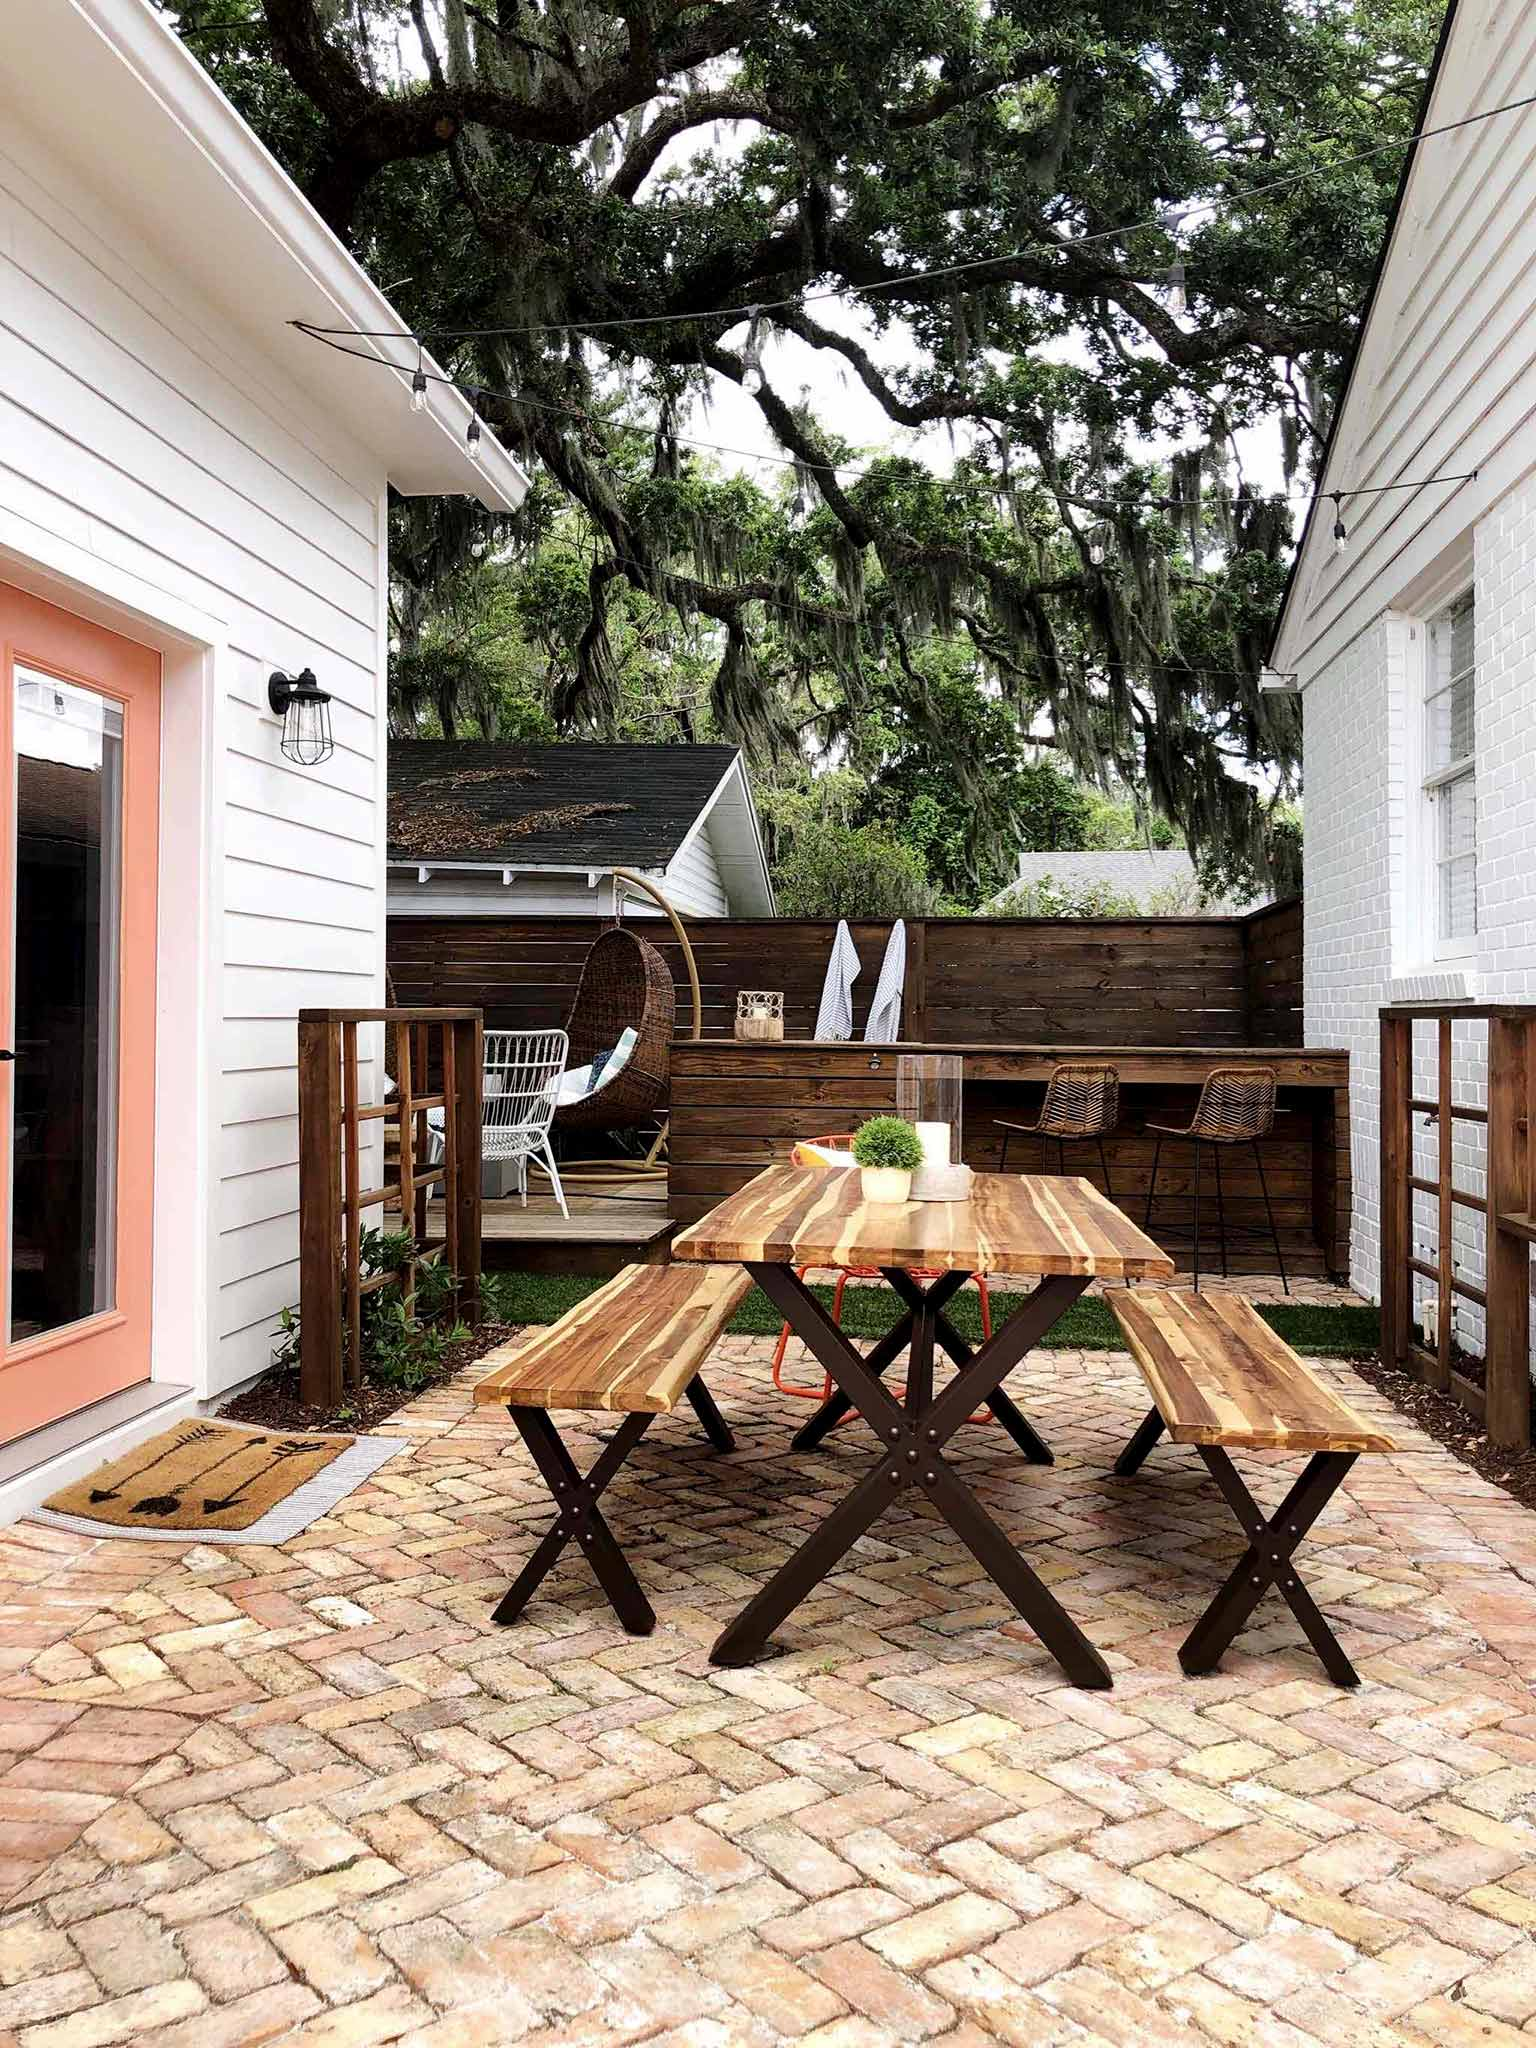 brick patio with table and benches